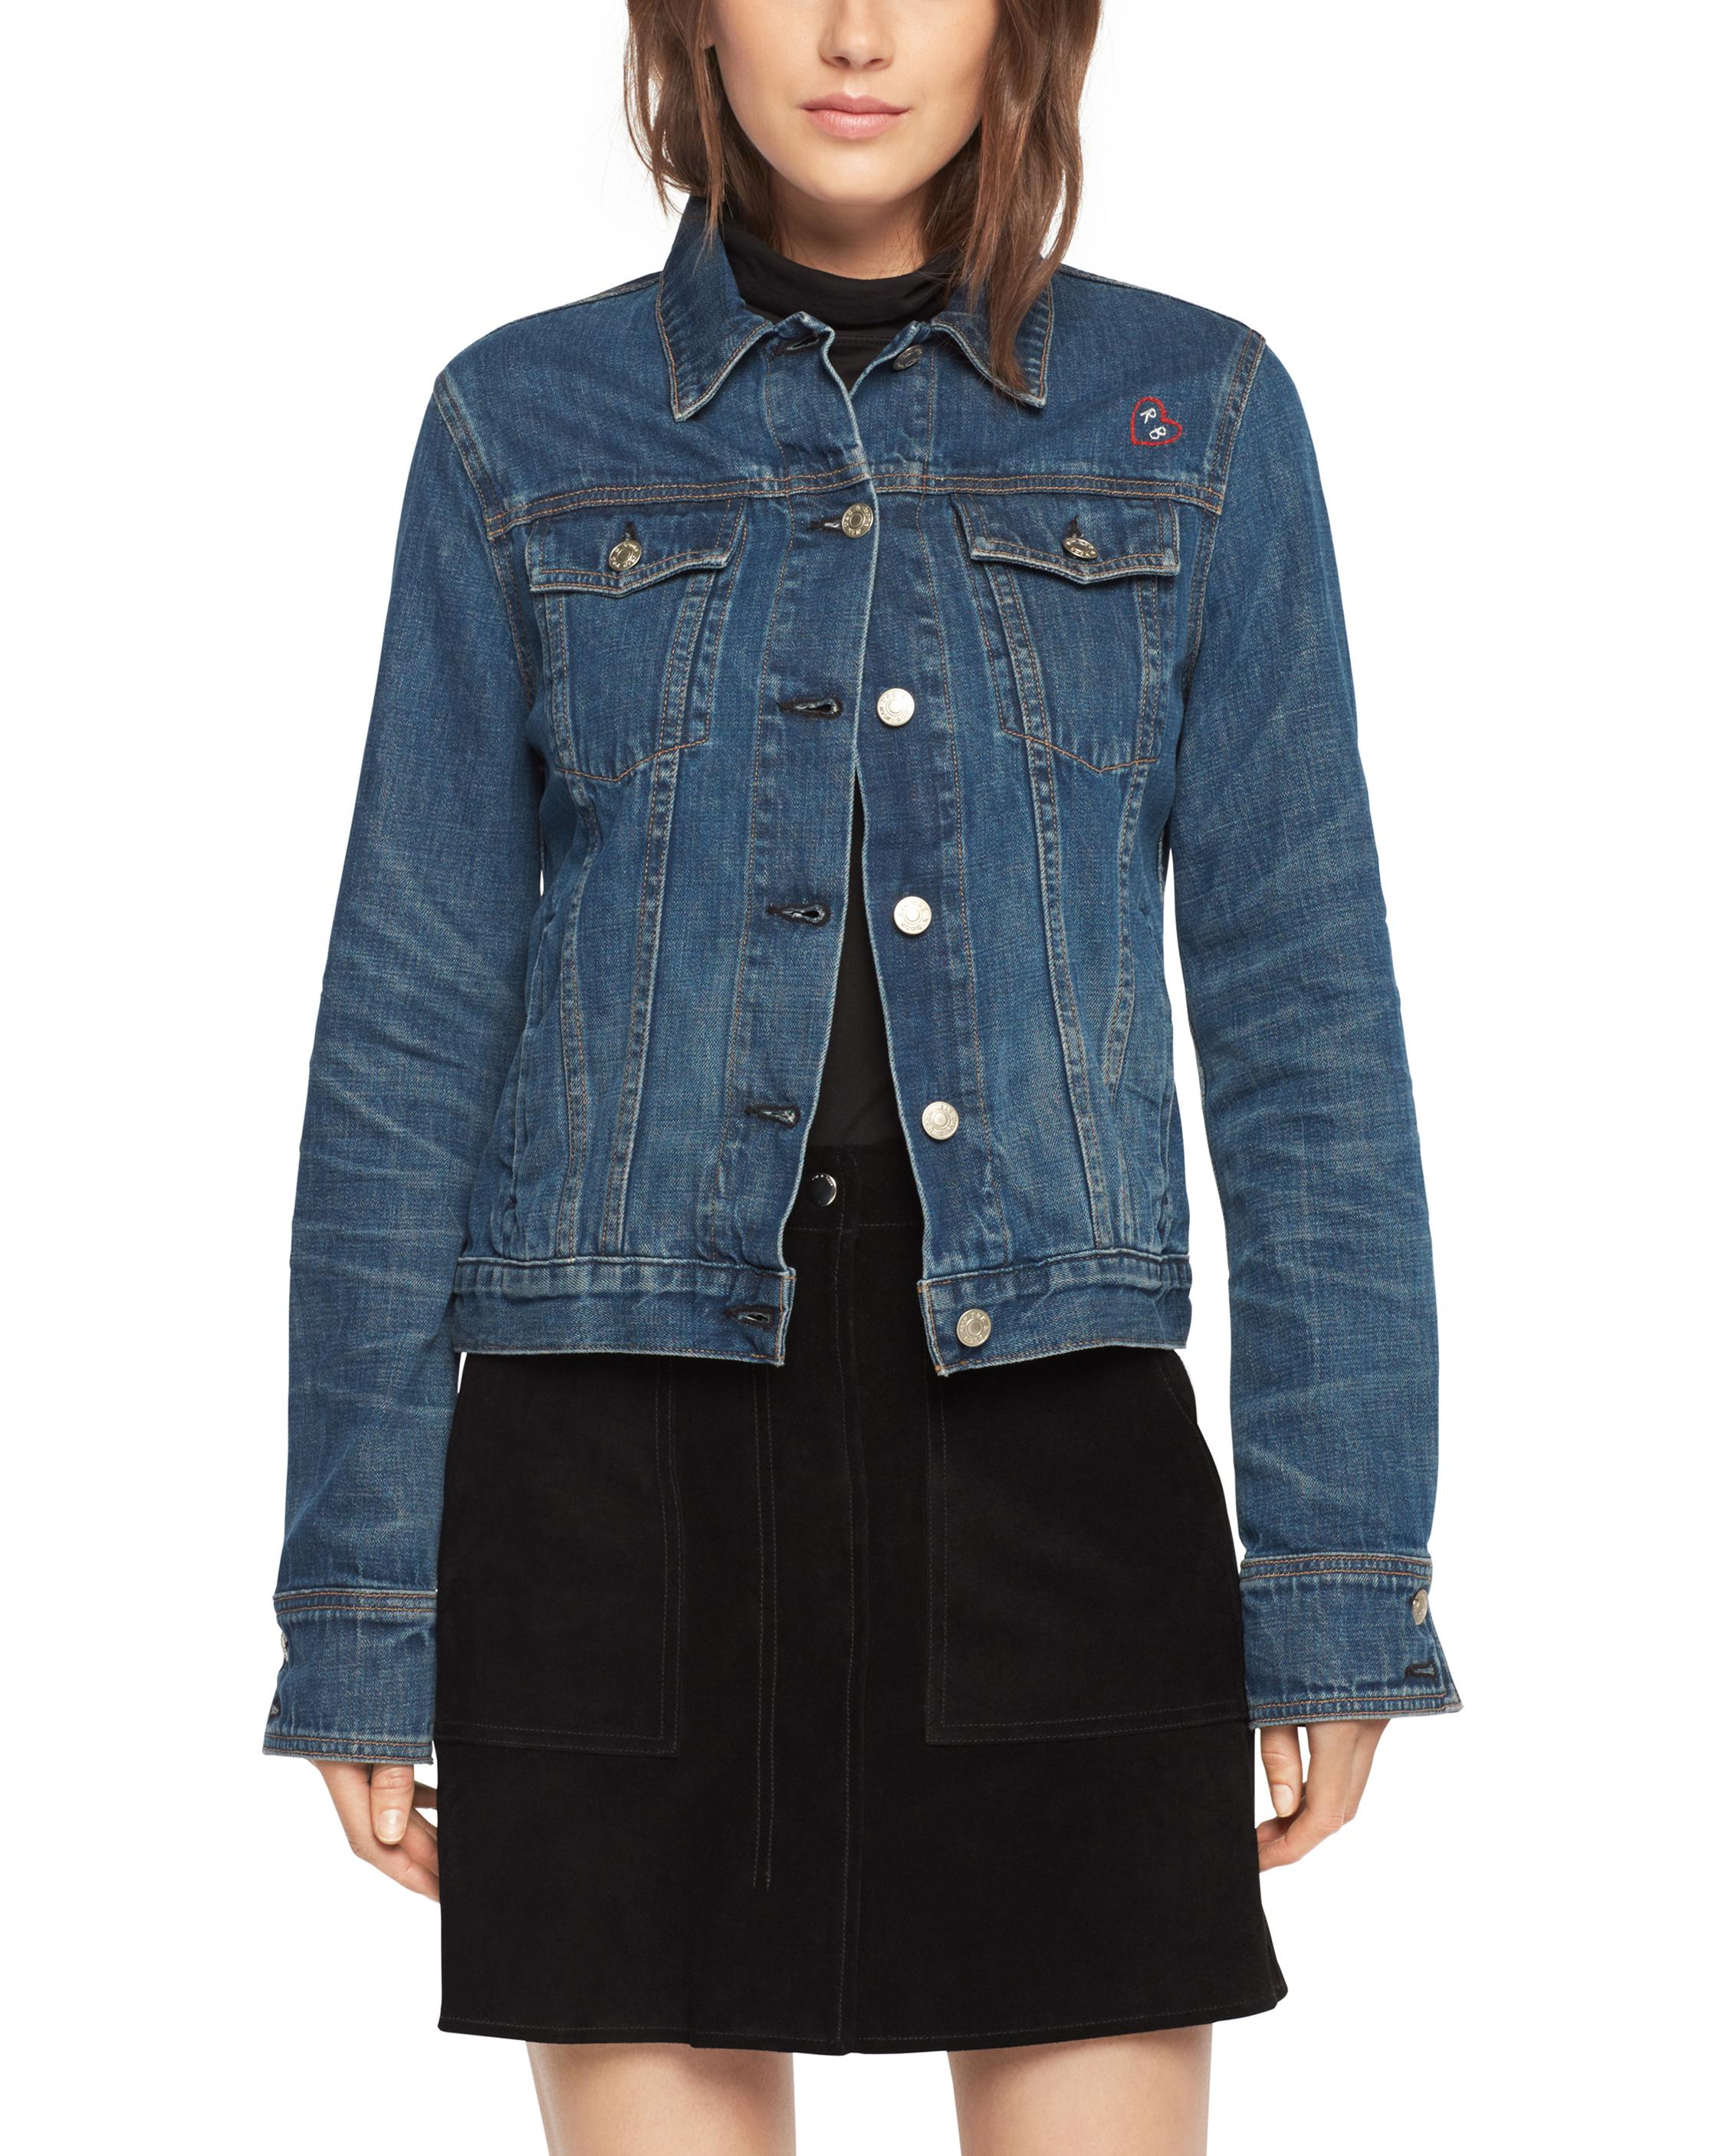 Best Selling Rag & Bone Button-Up Denim Jacket Clearance For Cheap iYSrC